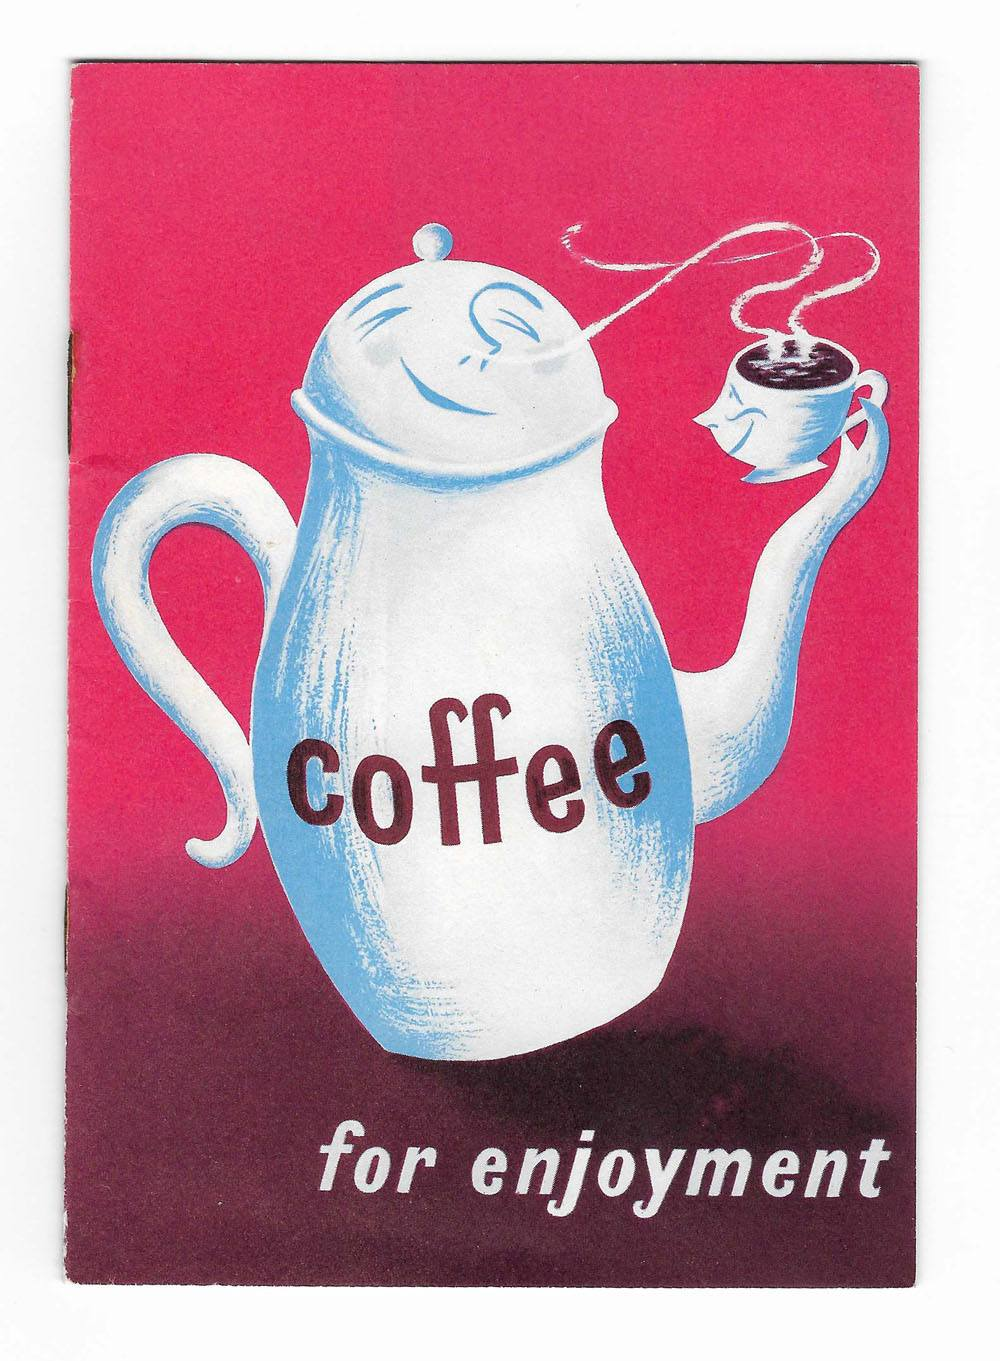 Coffee for enjoyment booklet 1956 designed by Stan Krol